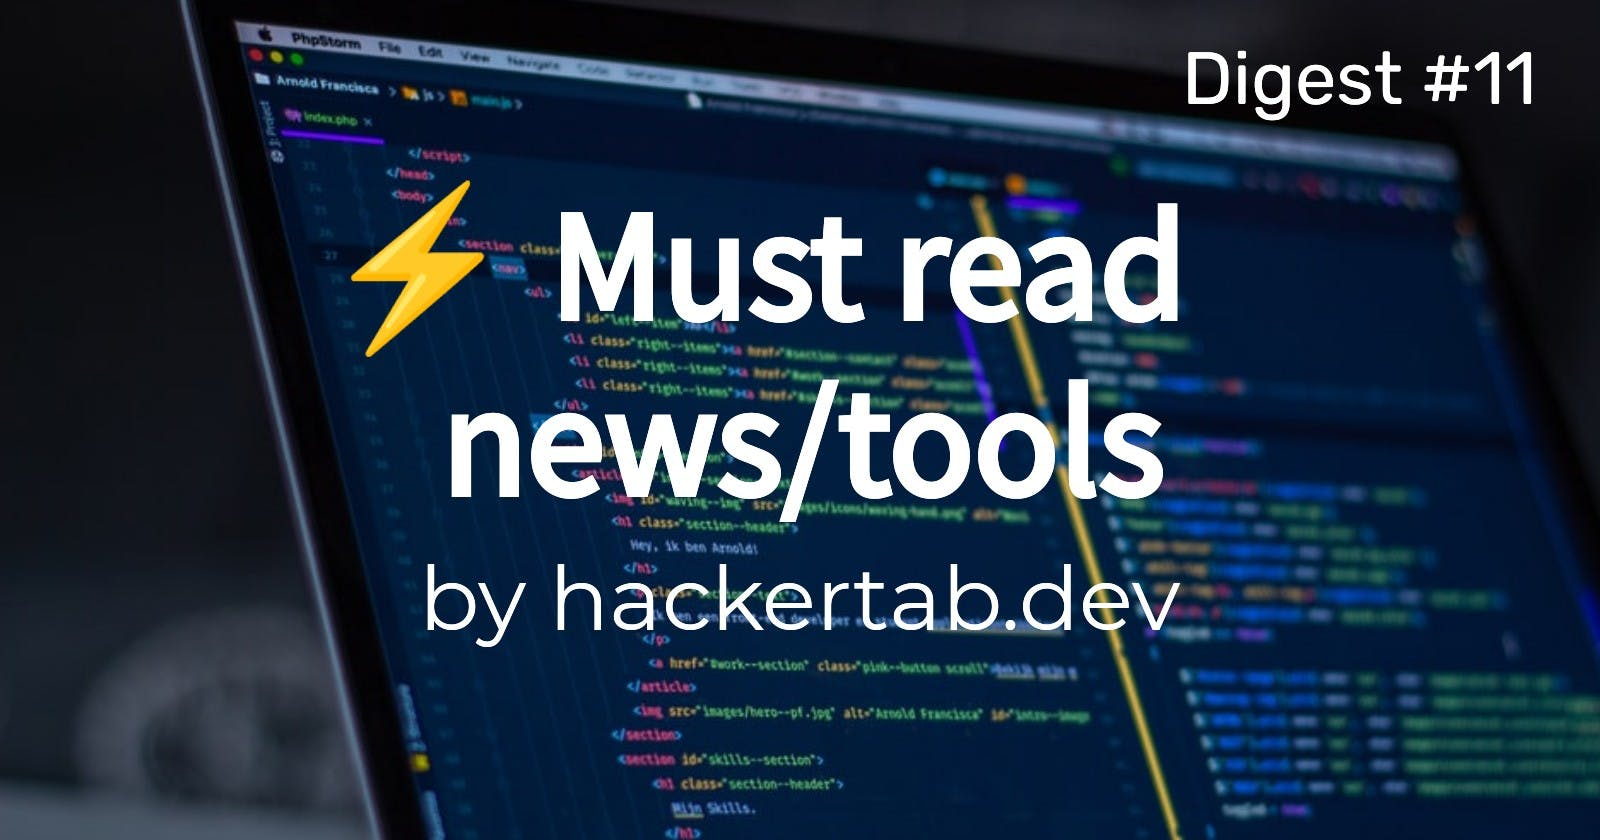 ⚡ Must read Tech news/tools of the day - Digest #11